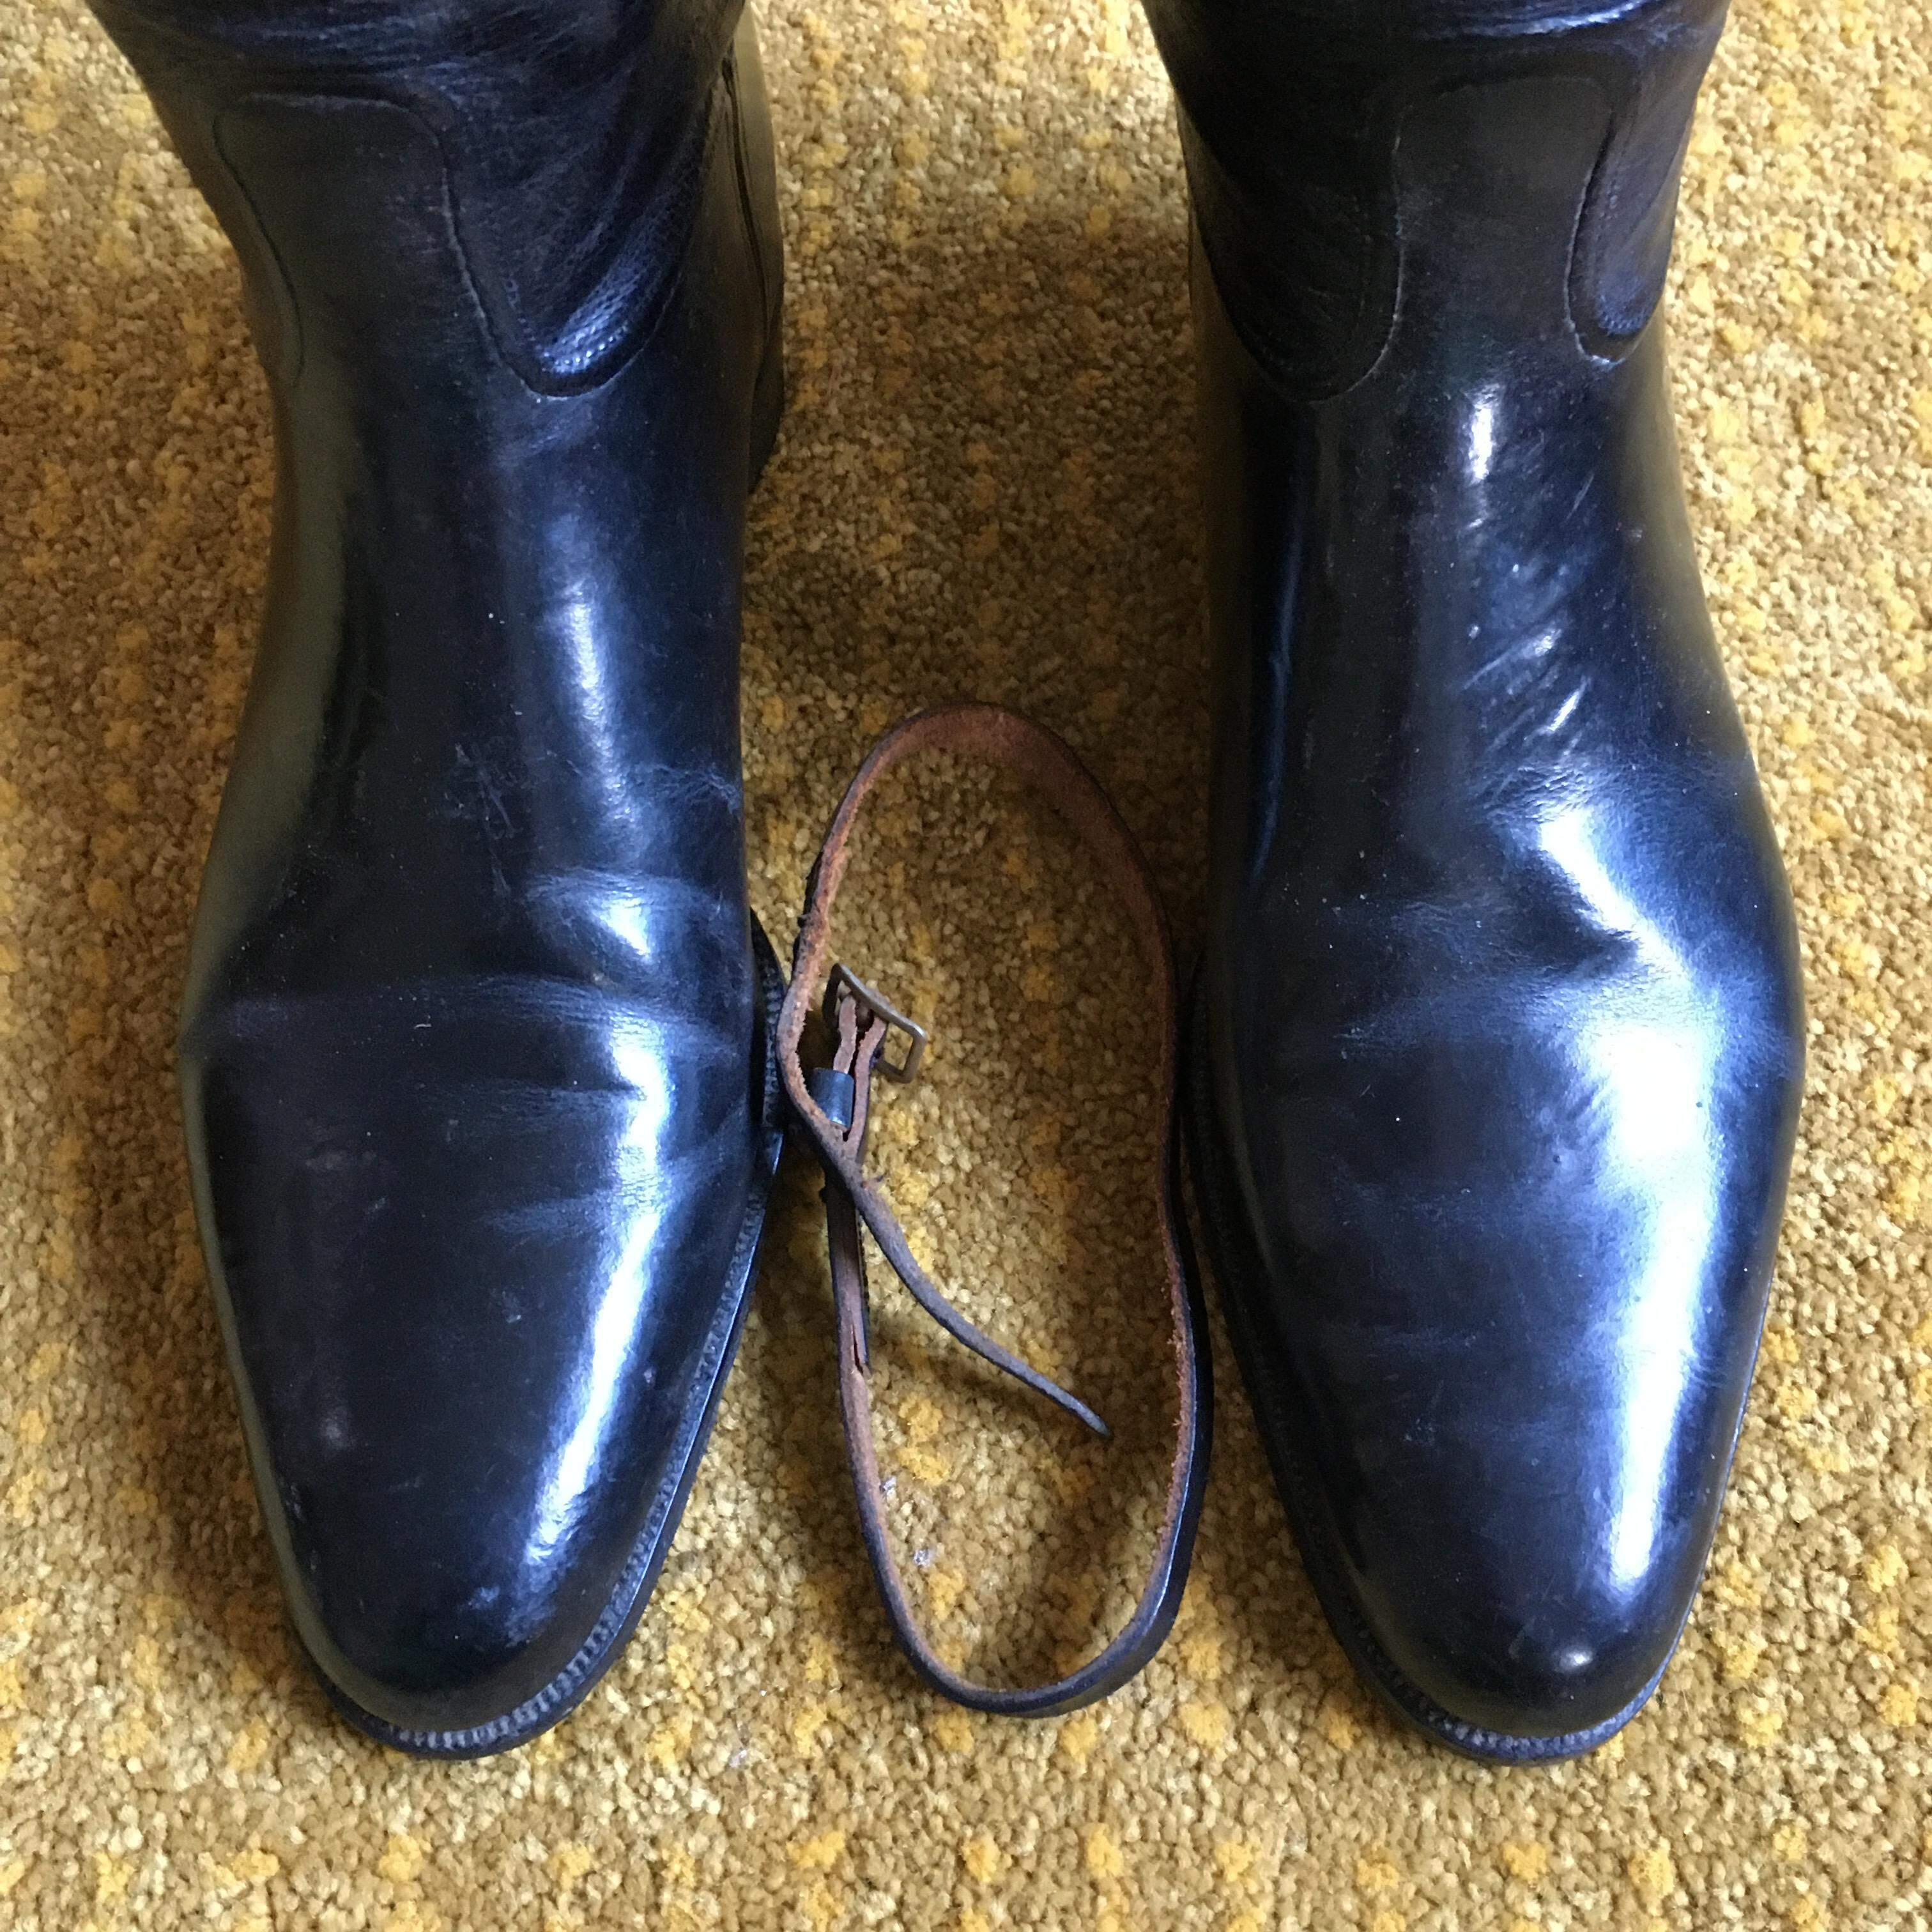 Pair of Black Riding Boots and 4 Part Trees By Maxwell Early 20th Century SOLD